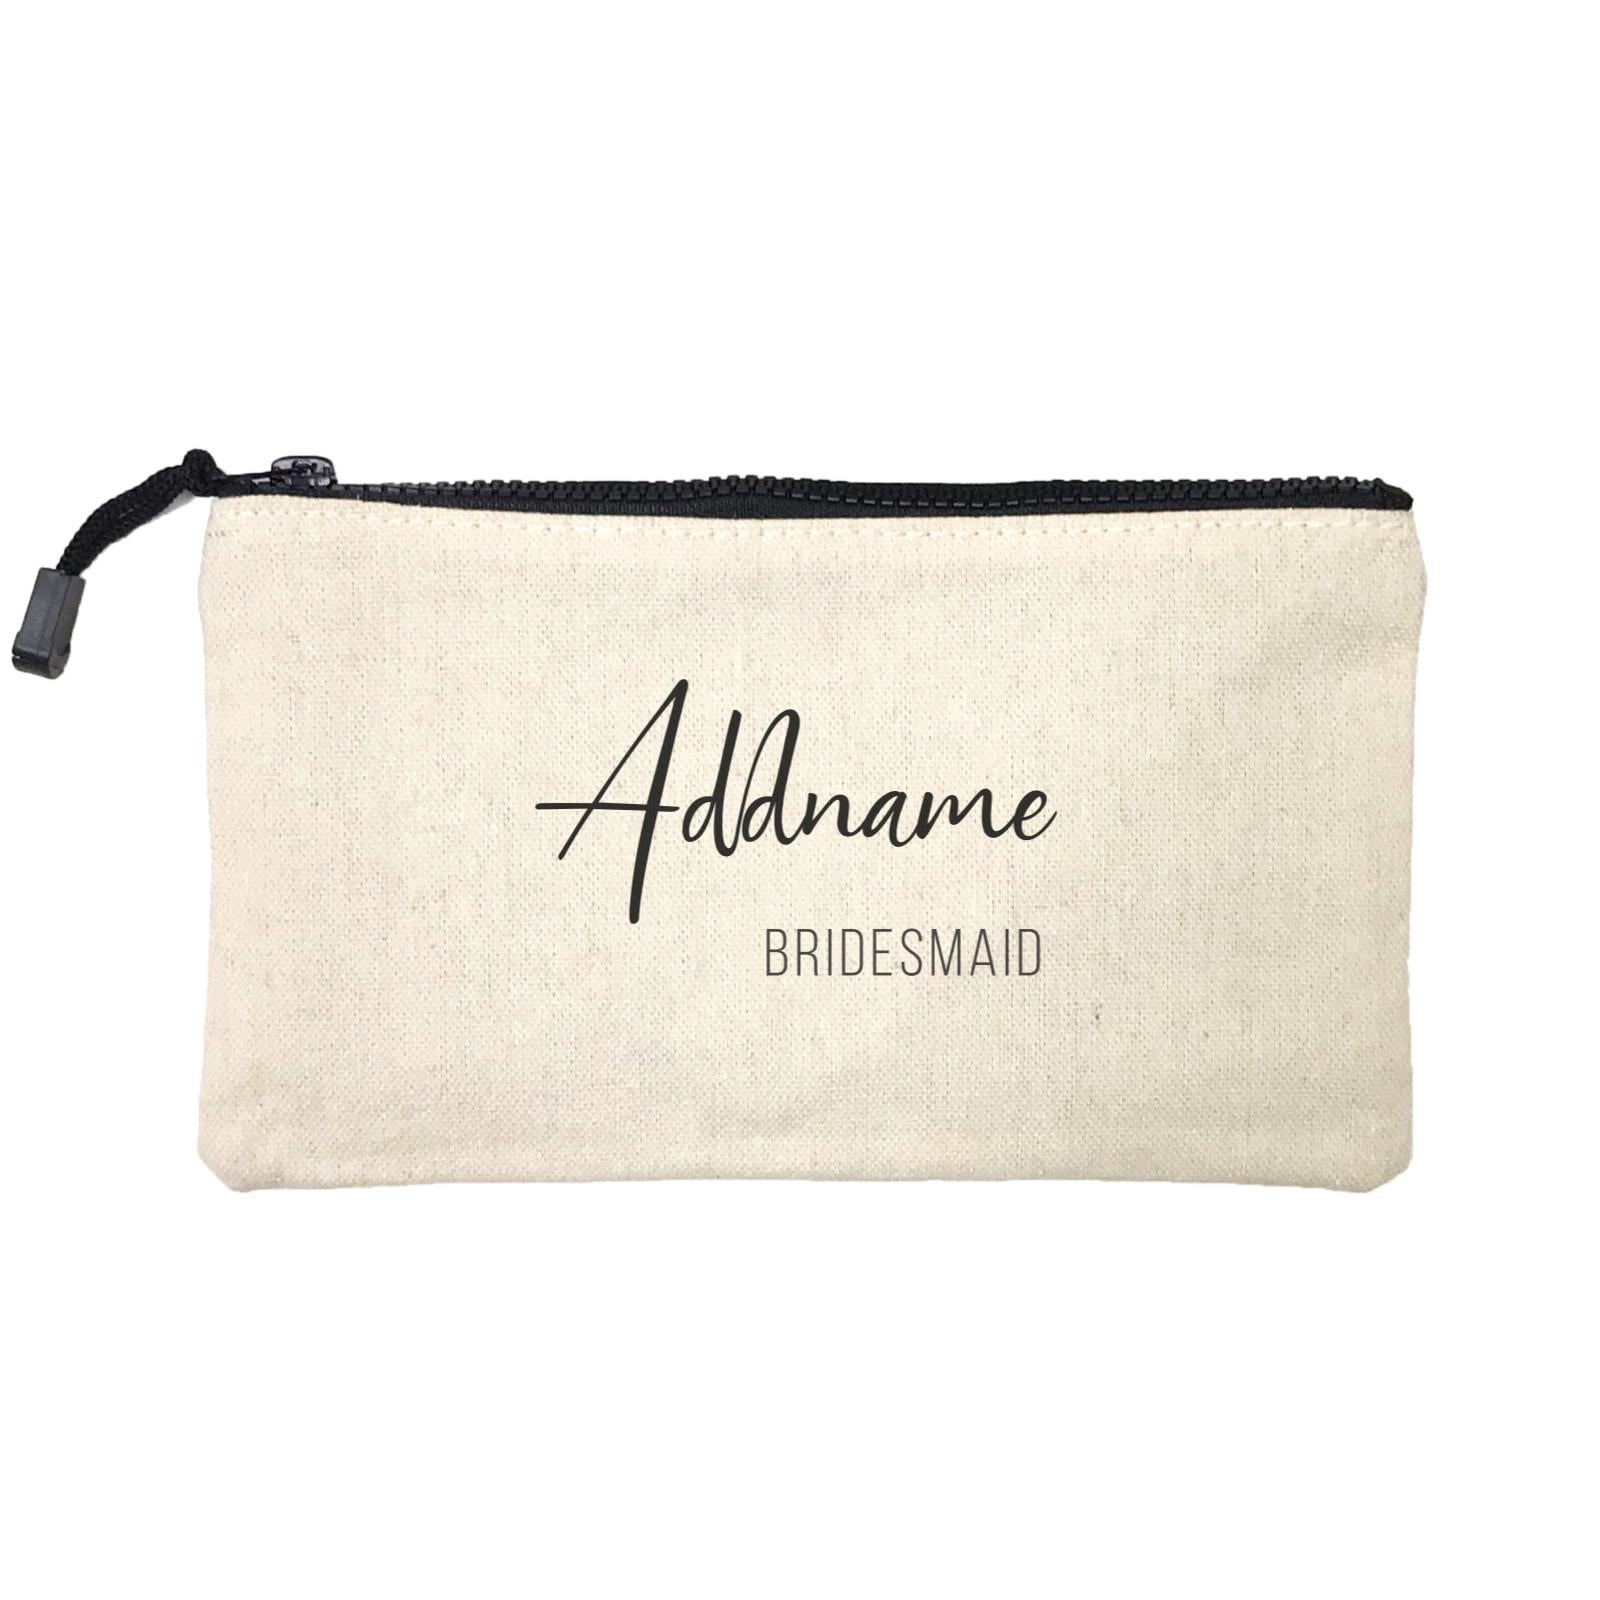 Bridesmaid Calligraphy Addname Modern Bridesmaid Mini Accessories Stationery Pouch